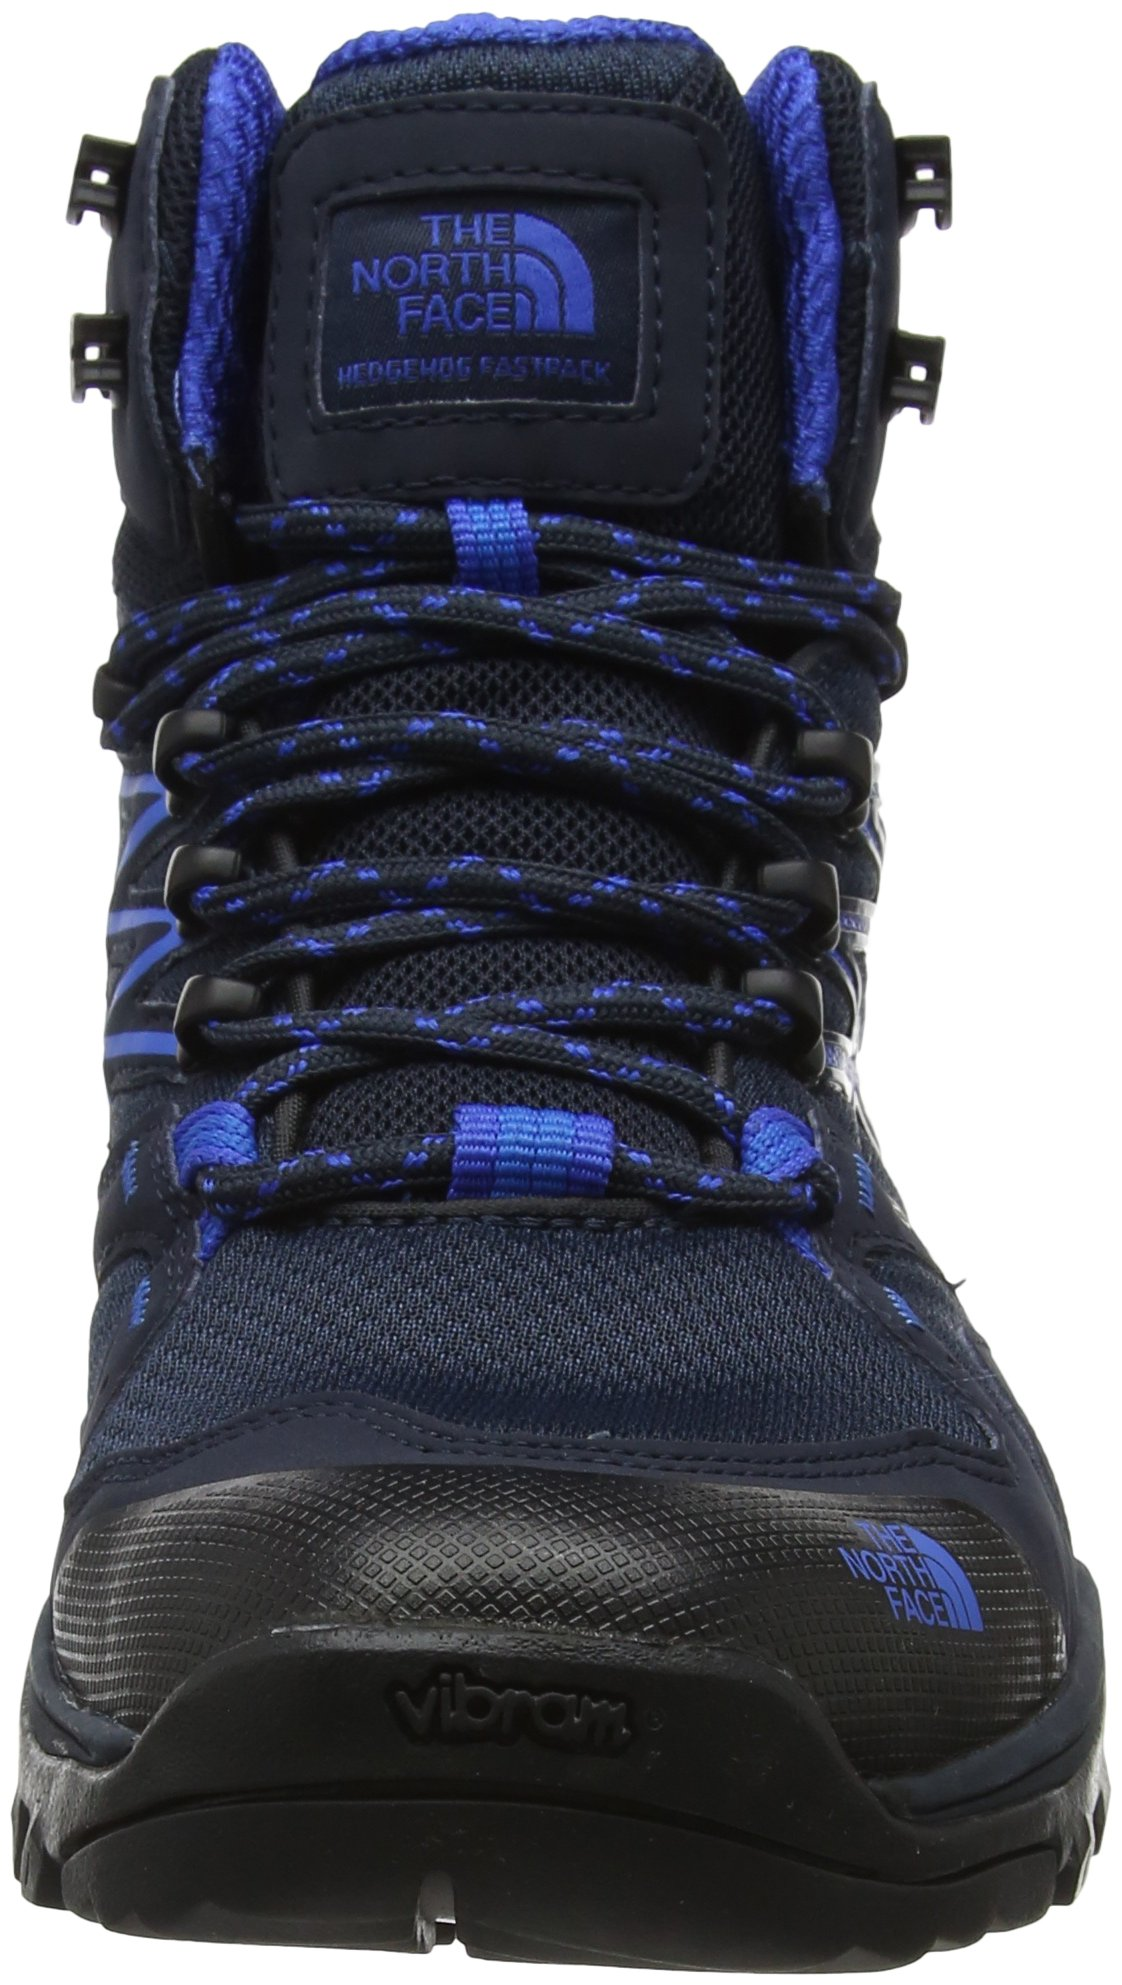 81LF1vaum%2BL - THE NORTH FACE Men's Hedgehog Fastpack Mid Gtx High Rise Hiking Boots